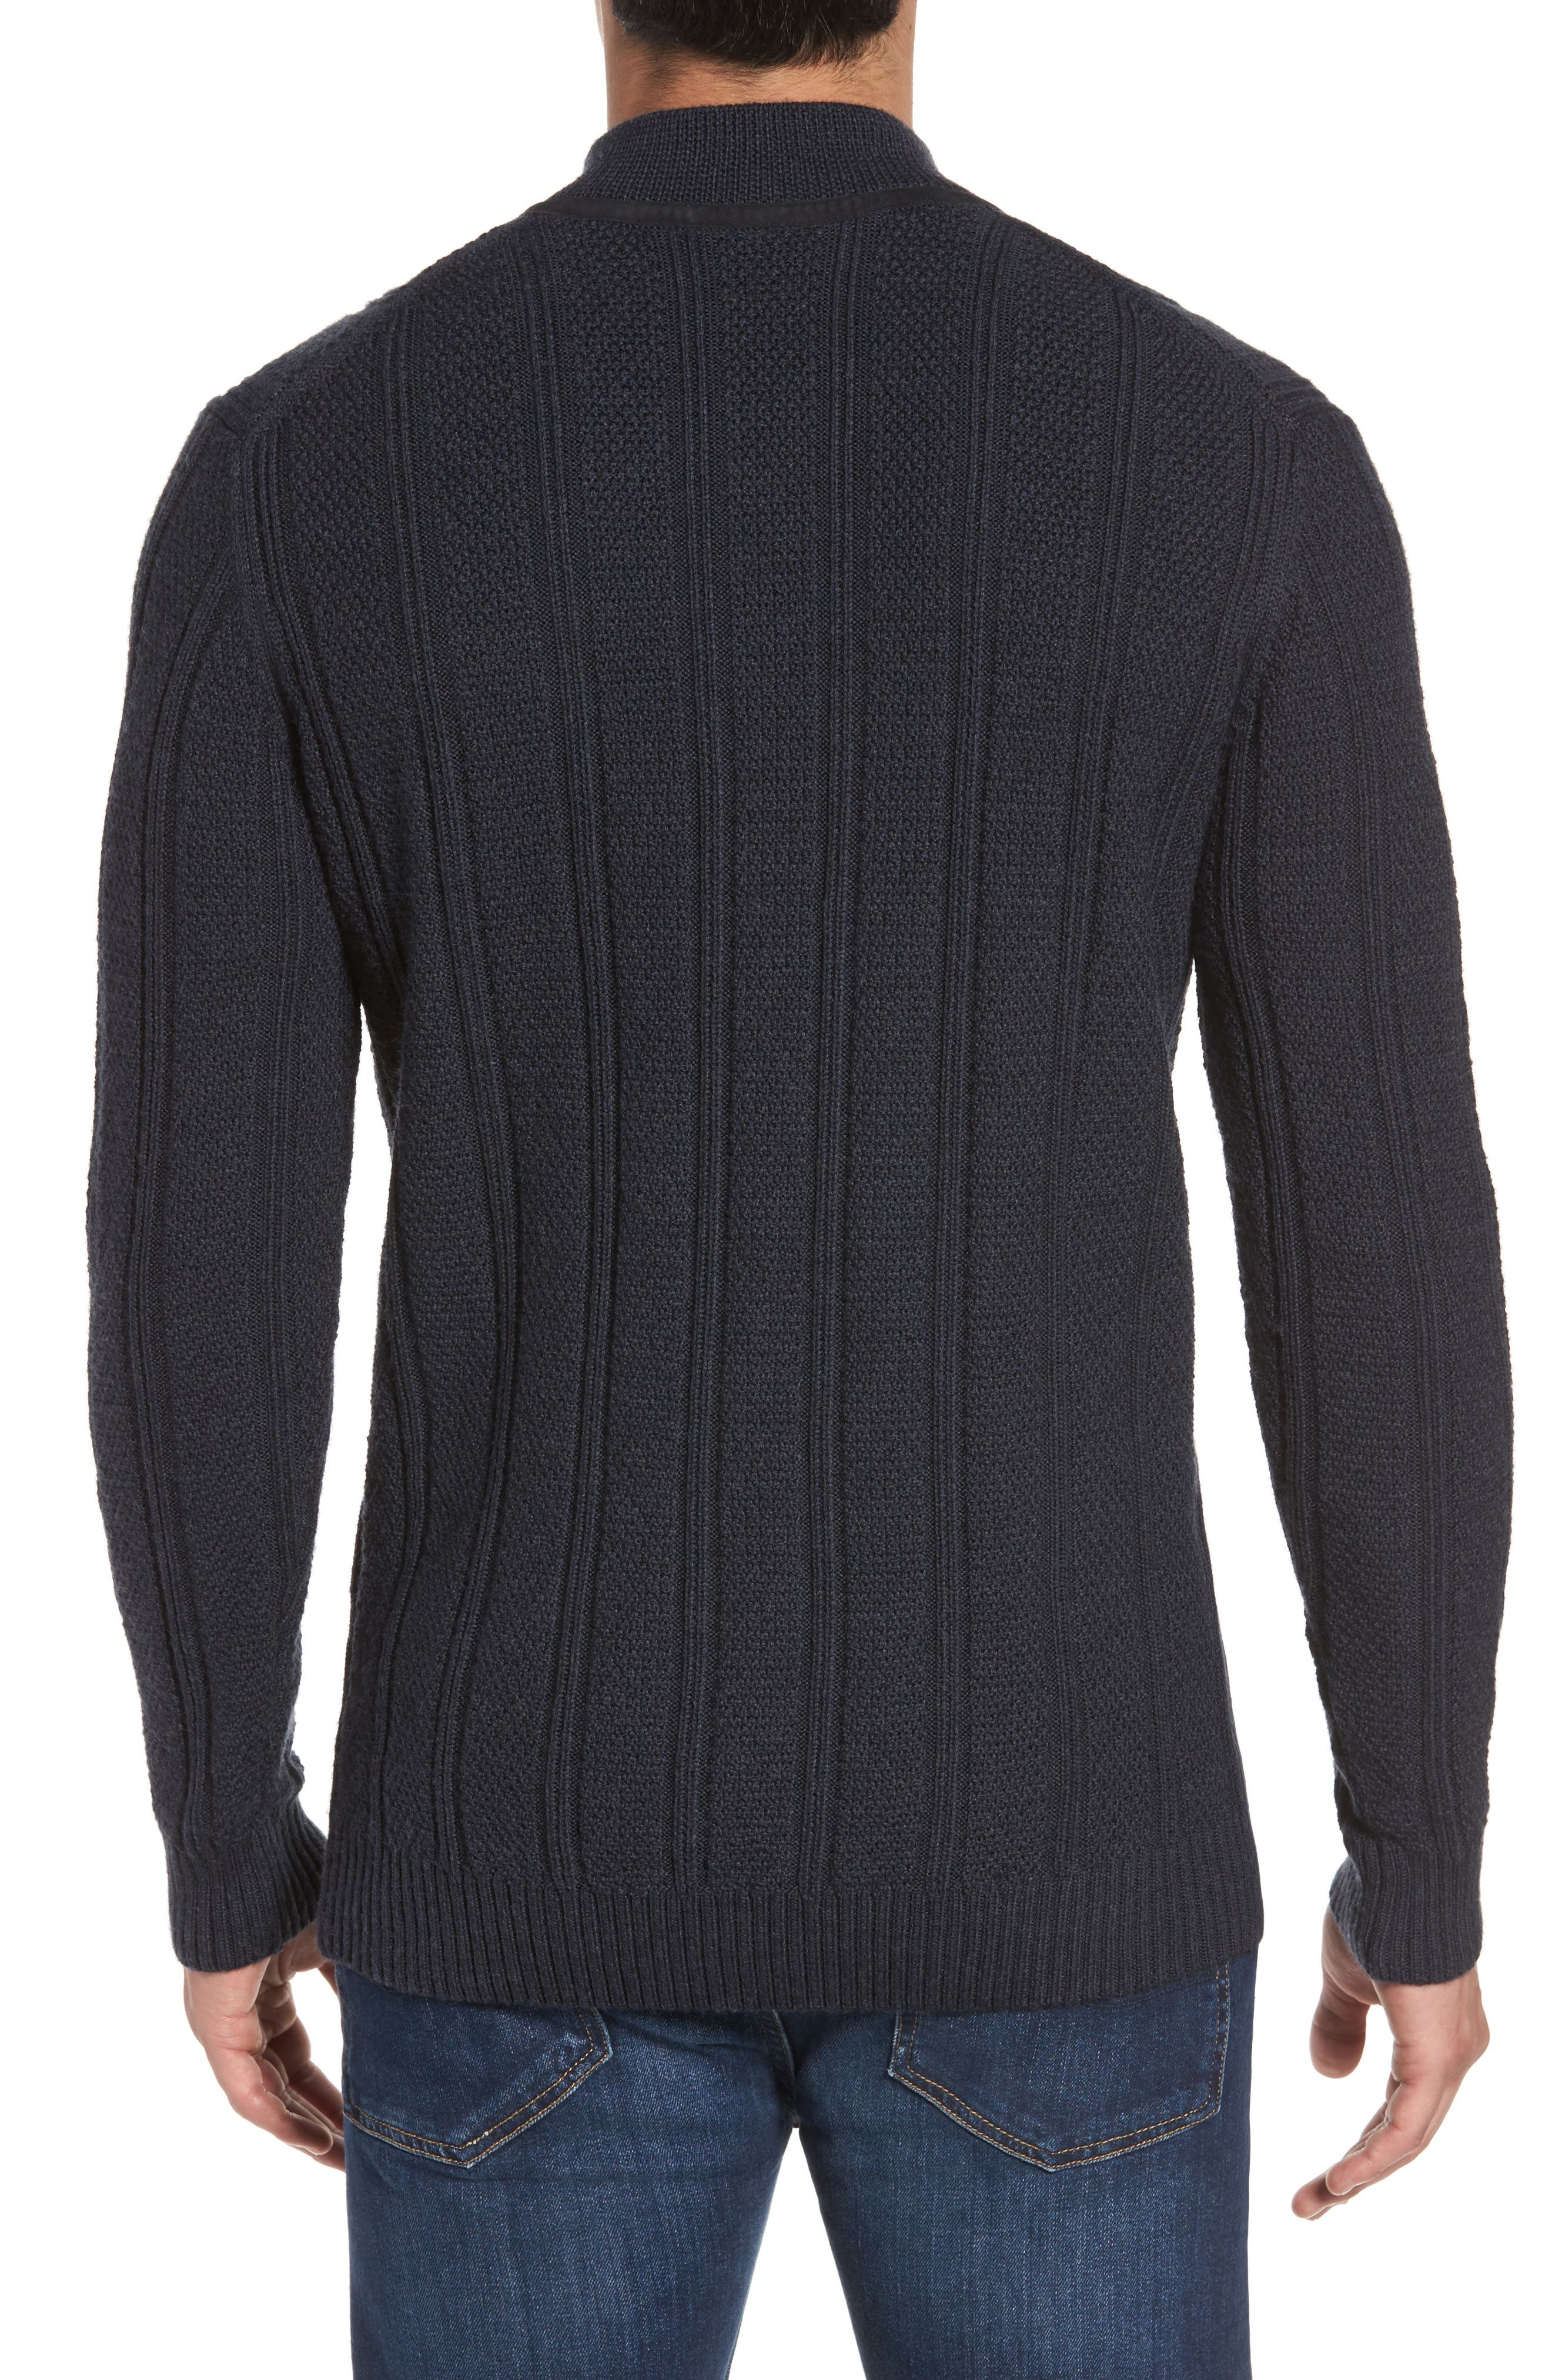 Alternate Image 2  - Rodd & Gunn Sovereign Island Wool Sweater